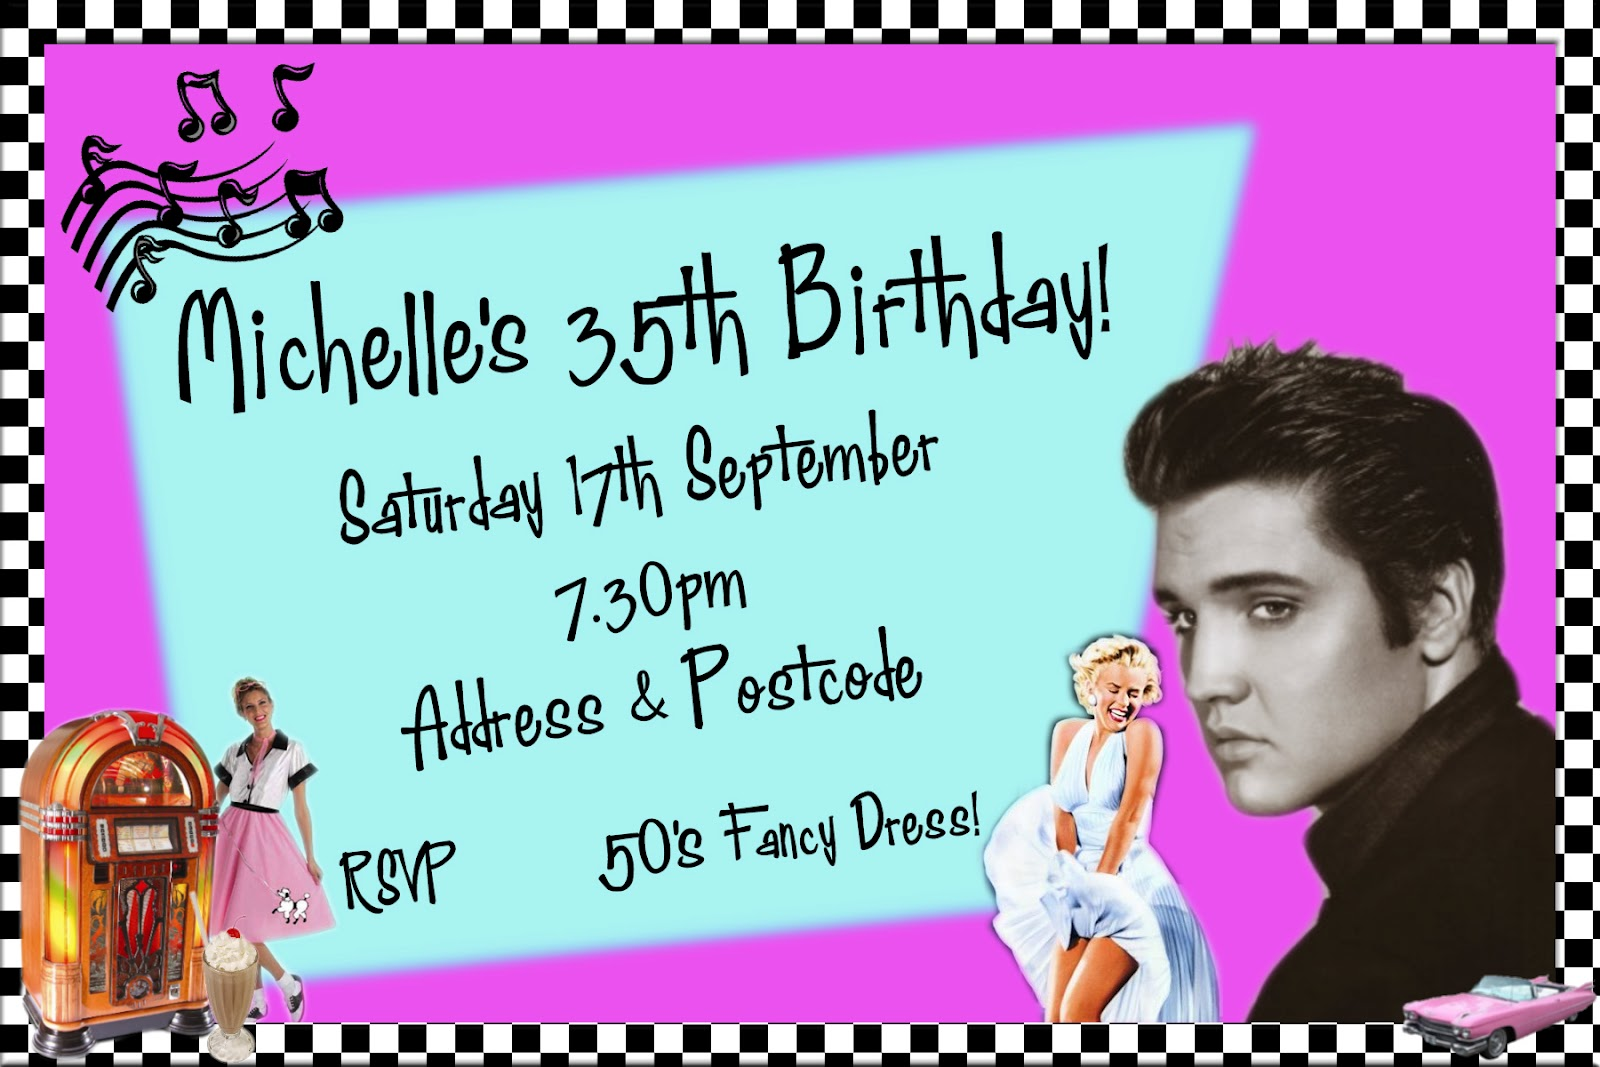 1950s Birthday Party Theme 1950s Themed Party Invitation